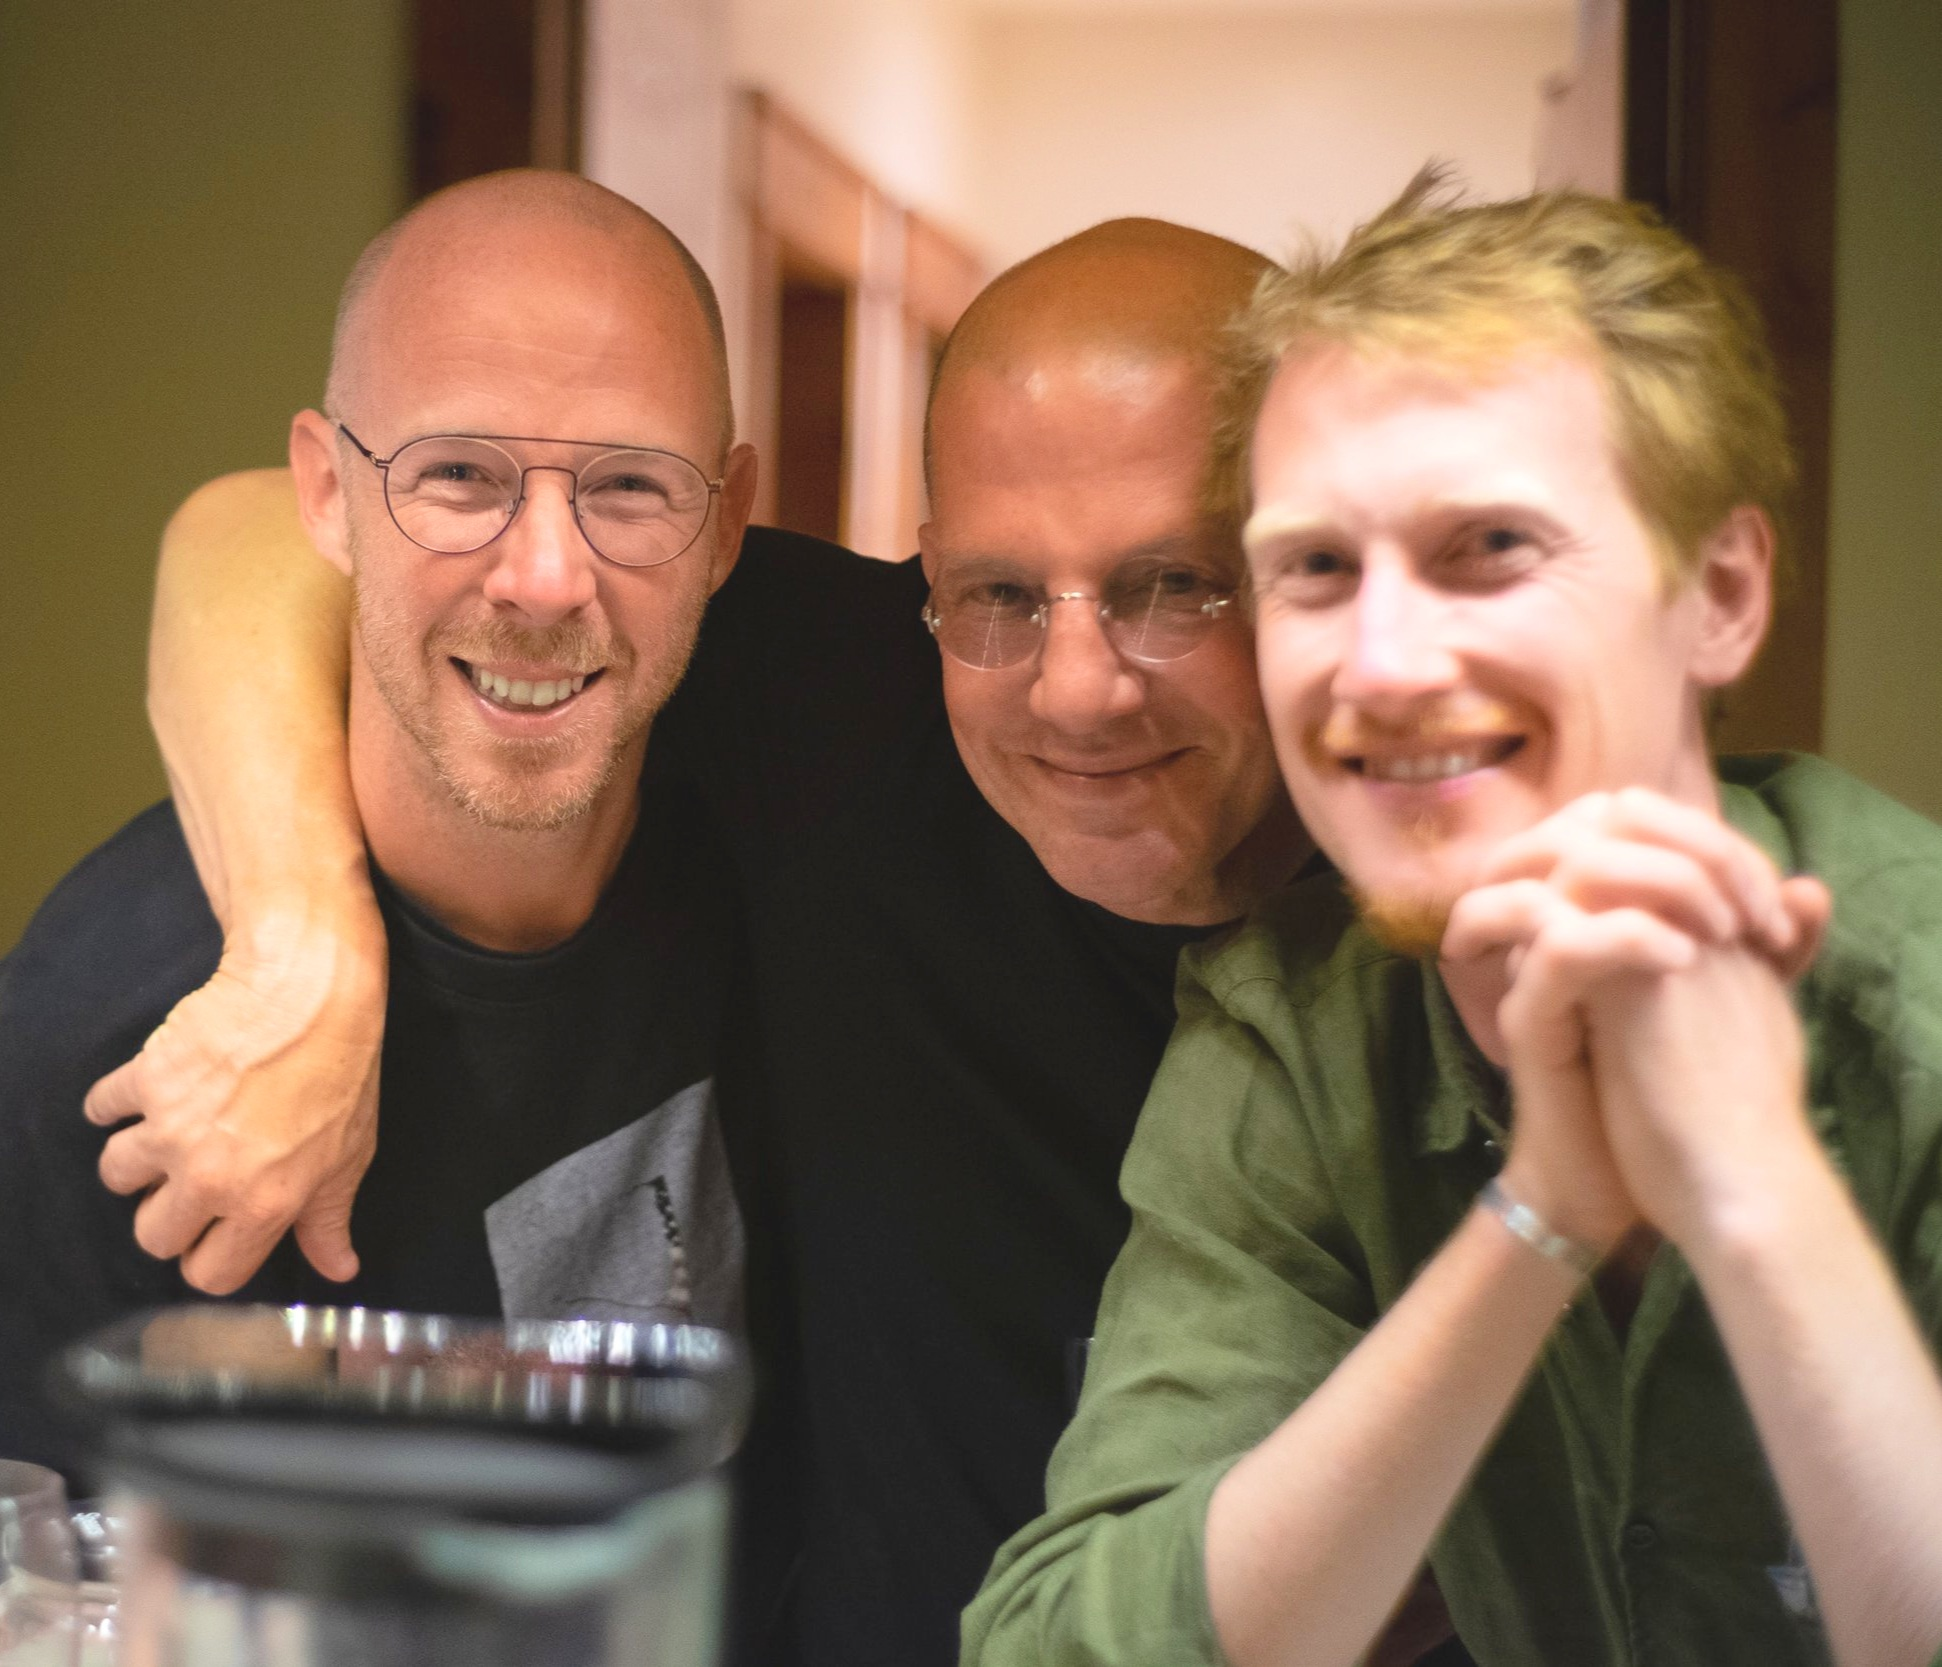 Shawn, Todd, and Luen of Dry Farm Wines showing gratefulness for each other